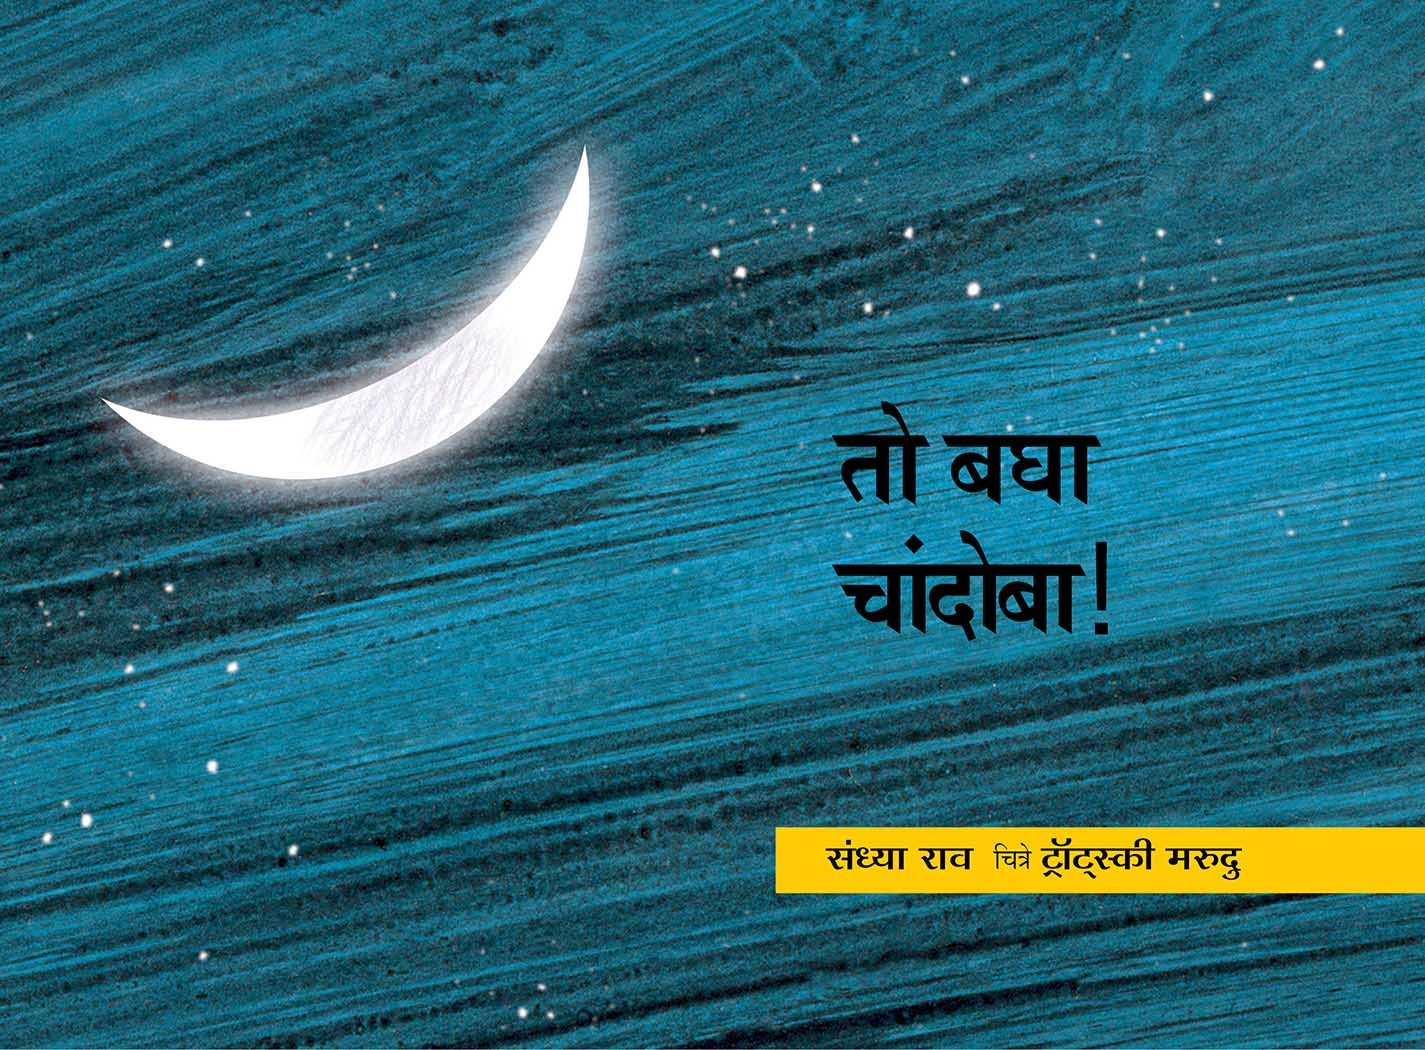 Look, The Moon!/Tho Bagha Chandoba! (Marathi)